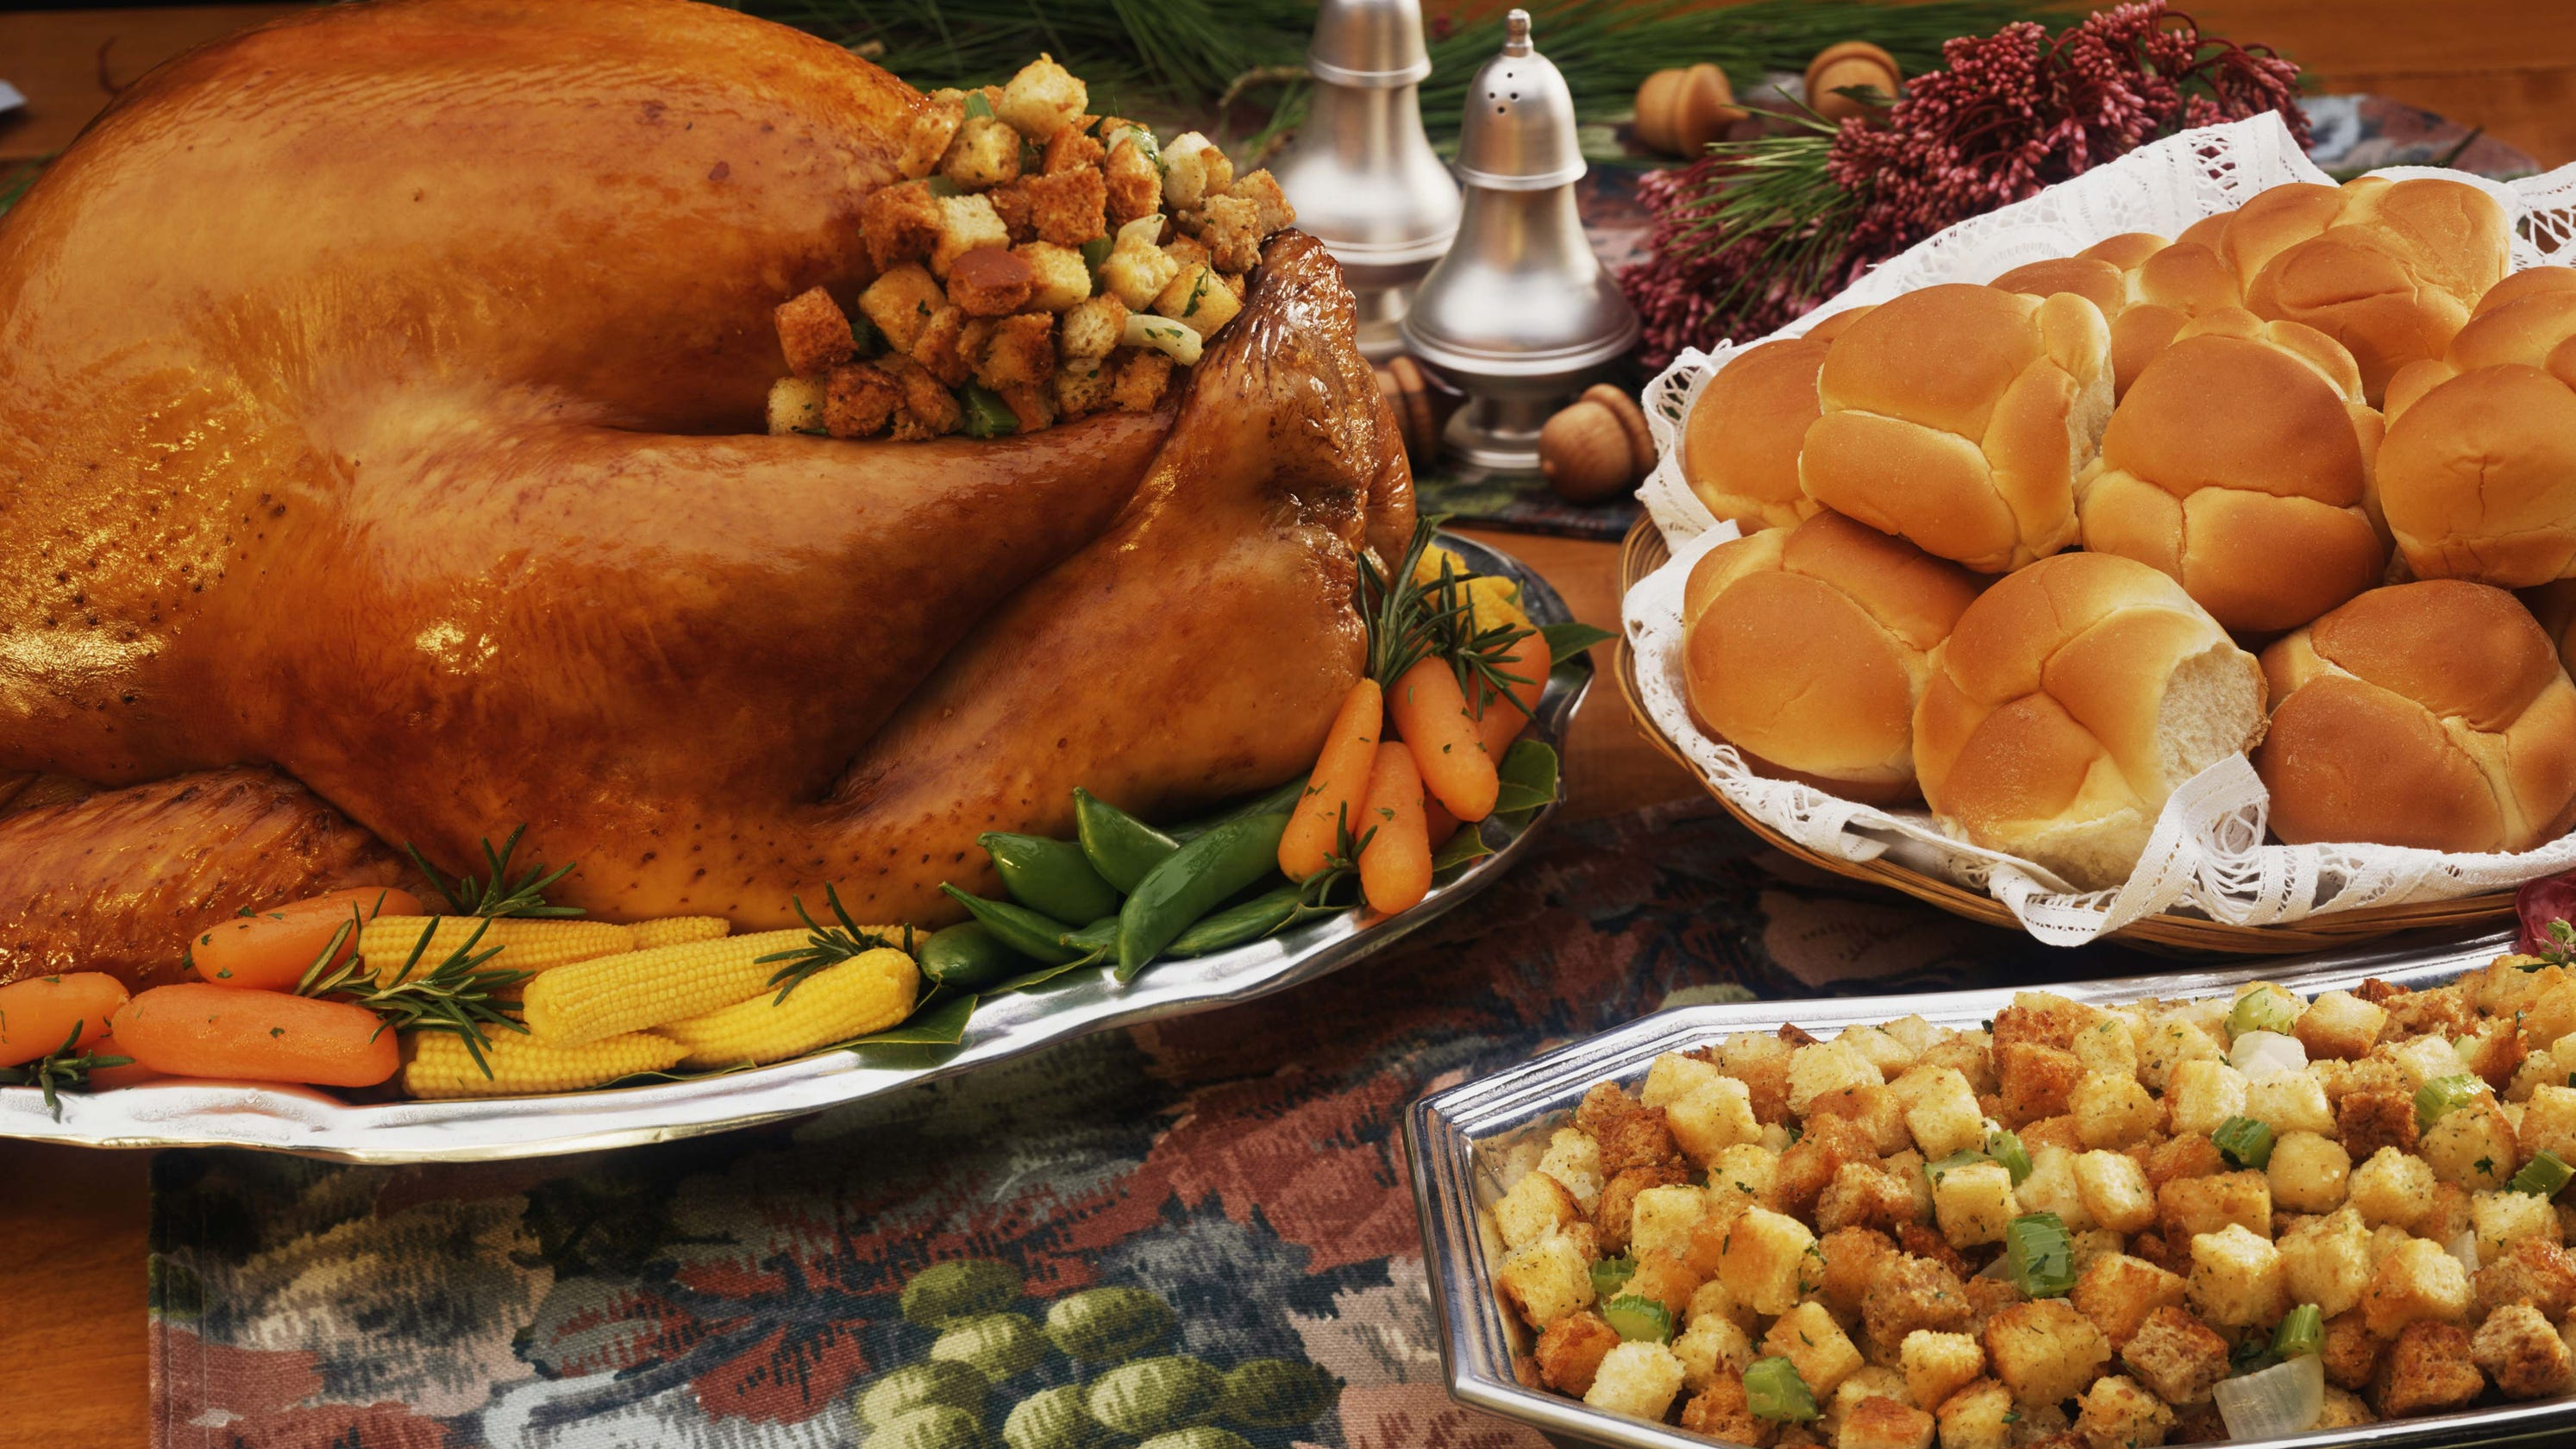 Instead of a big dinner with family or friends, make new Thanksgiving traditions. We have a few ideas